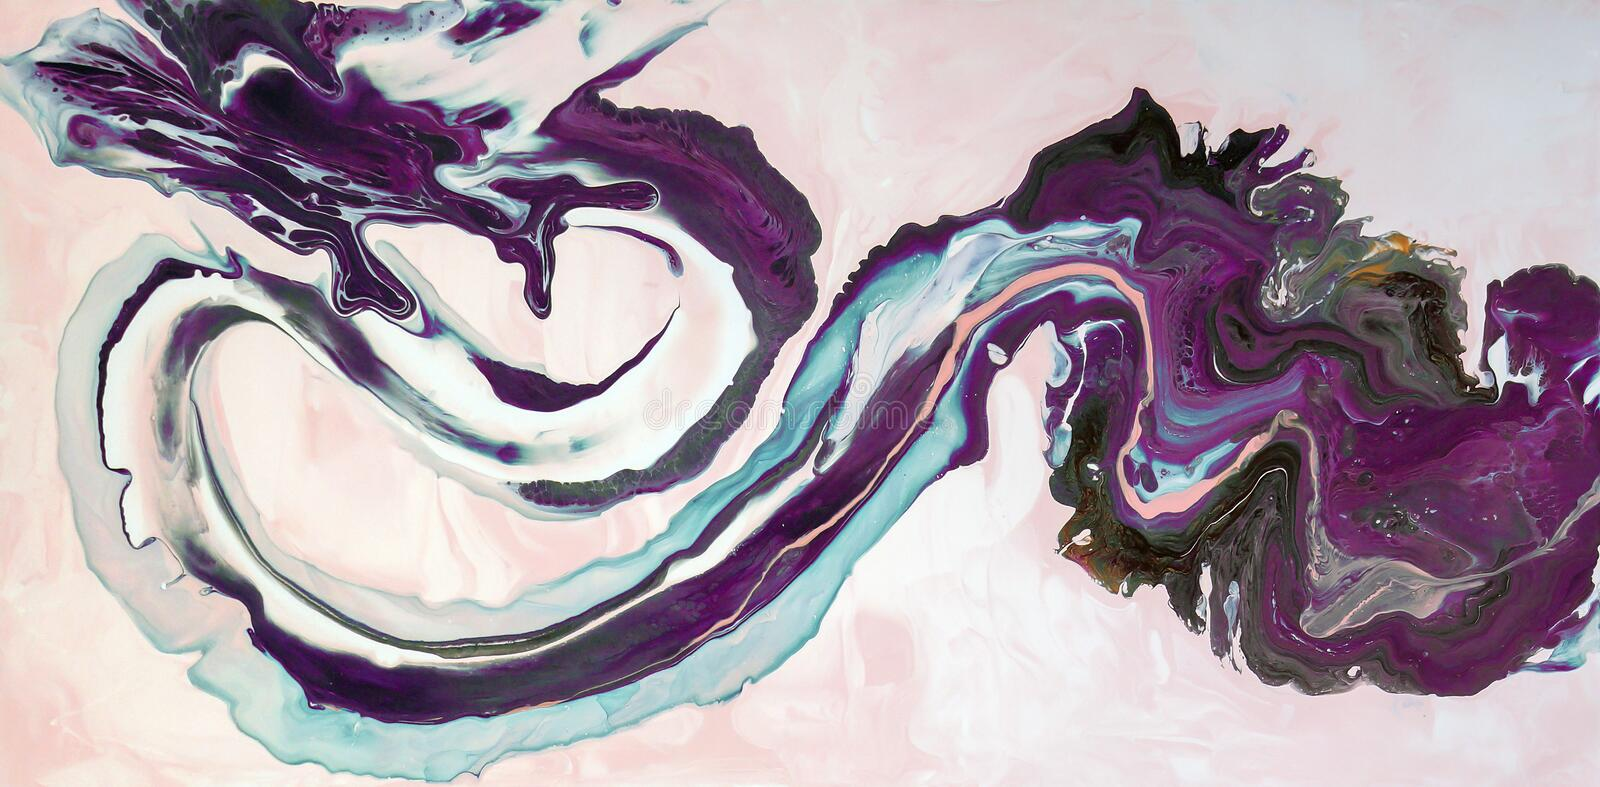 Marbling. Marble texture. Paint splash. Colorful fluid. Abstract colored background. Raster illustration. Colorful abstract painti stock illustration